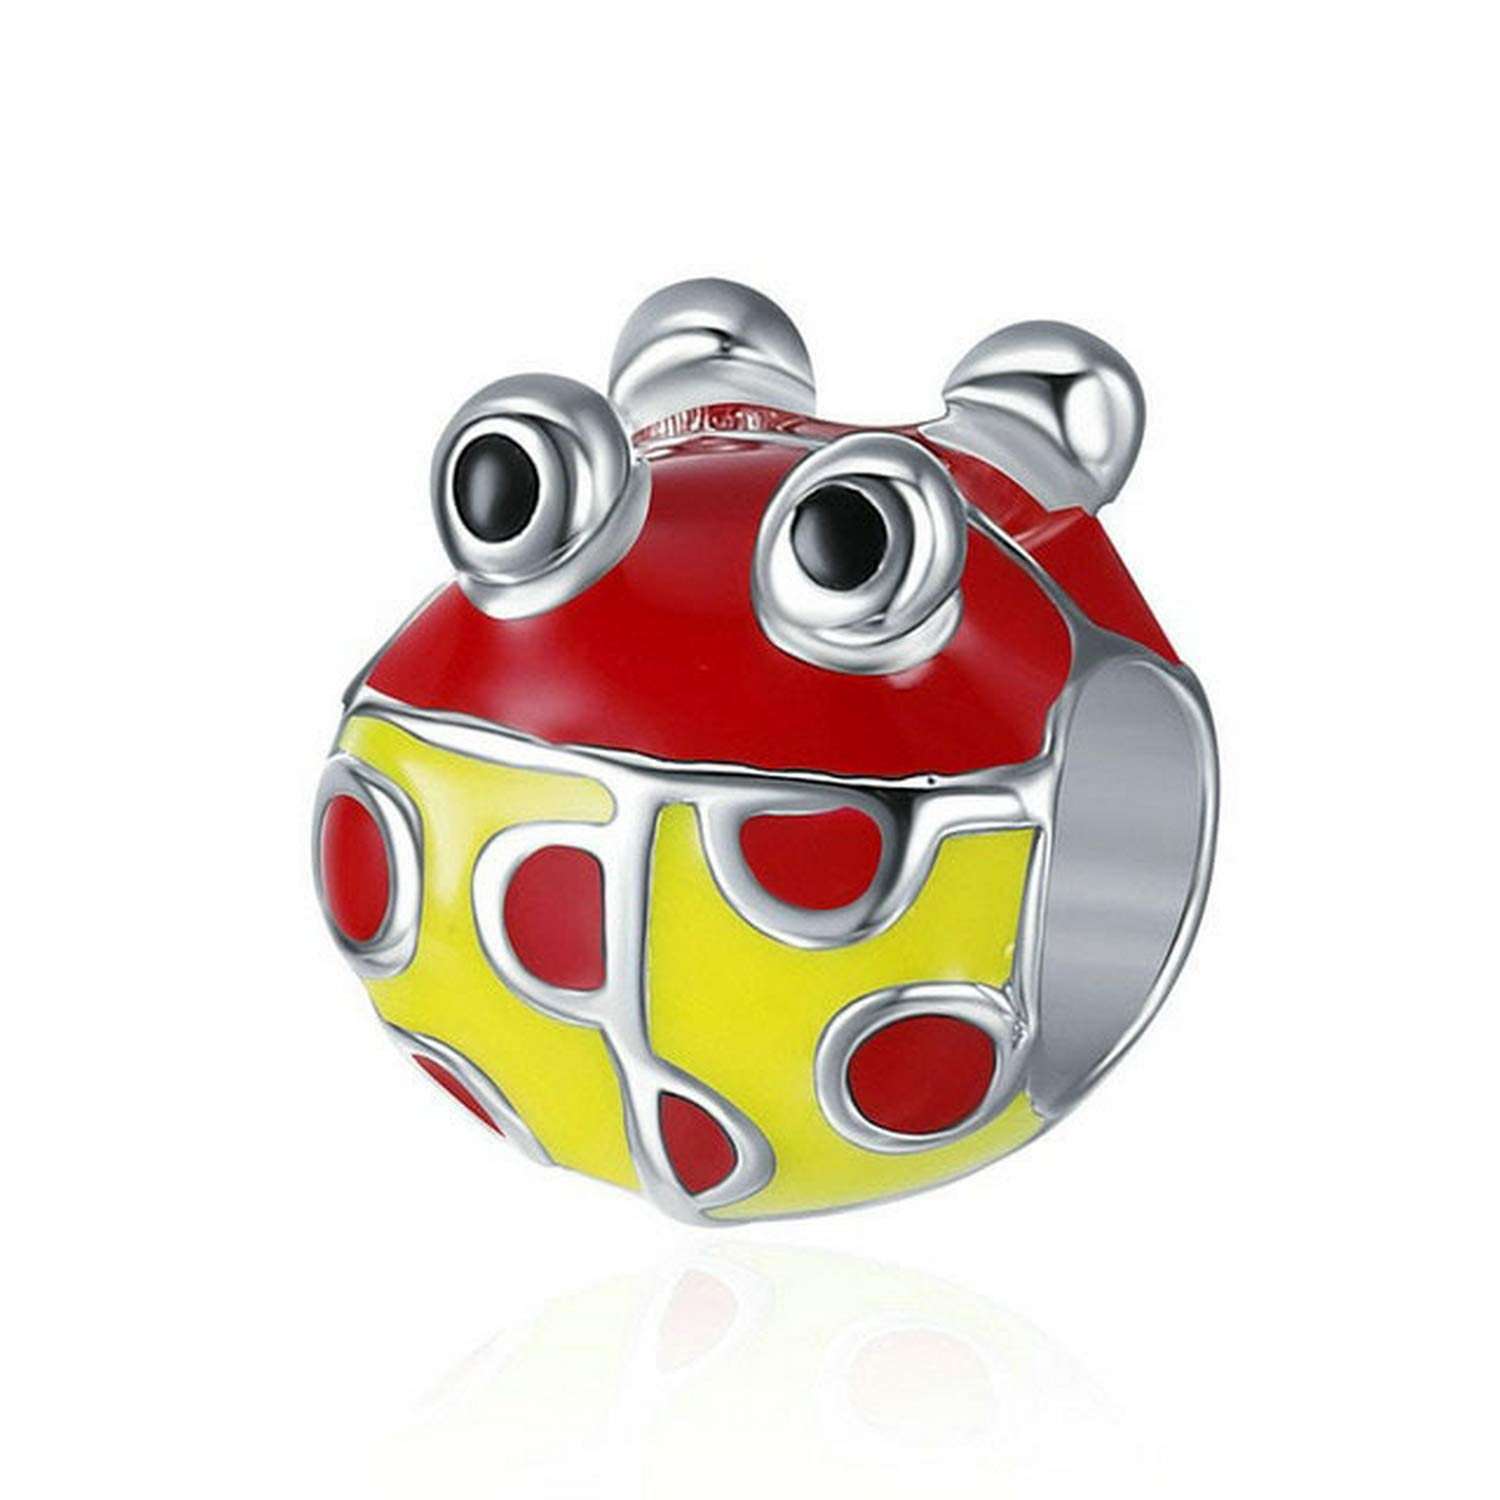 EverReena Cute Colorful Red Yellow Ladybug Silver Beads Bracelets